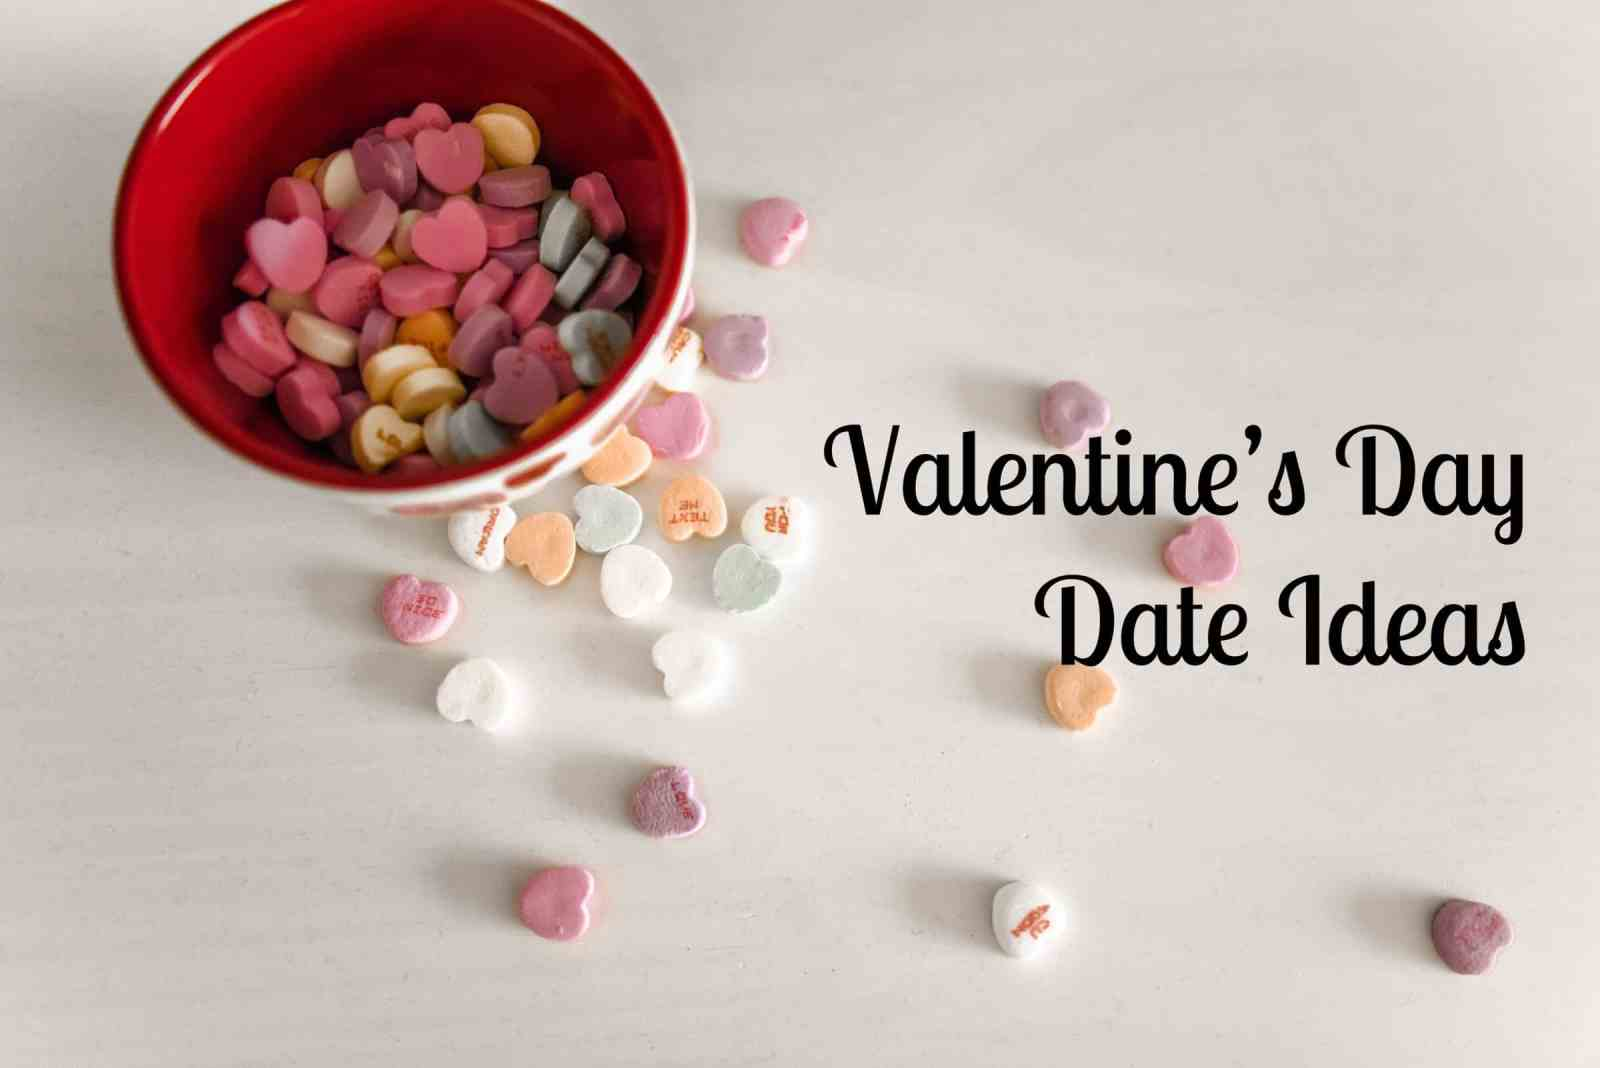 These Valentine's Day Date Ideas will ensure that your date night with your partner is spent the right way, a.k.a - with food, wine, chocolate, and more!